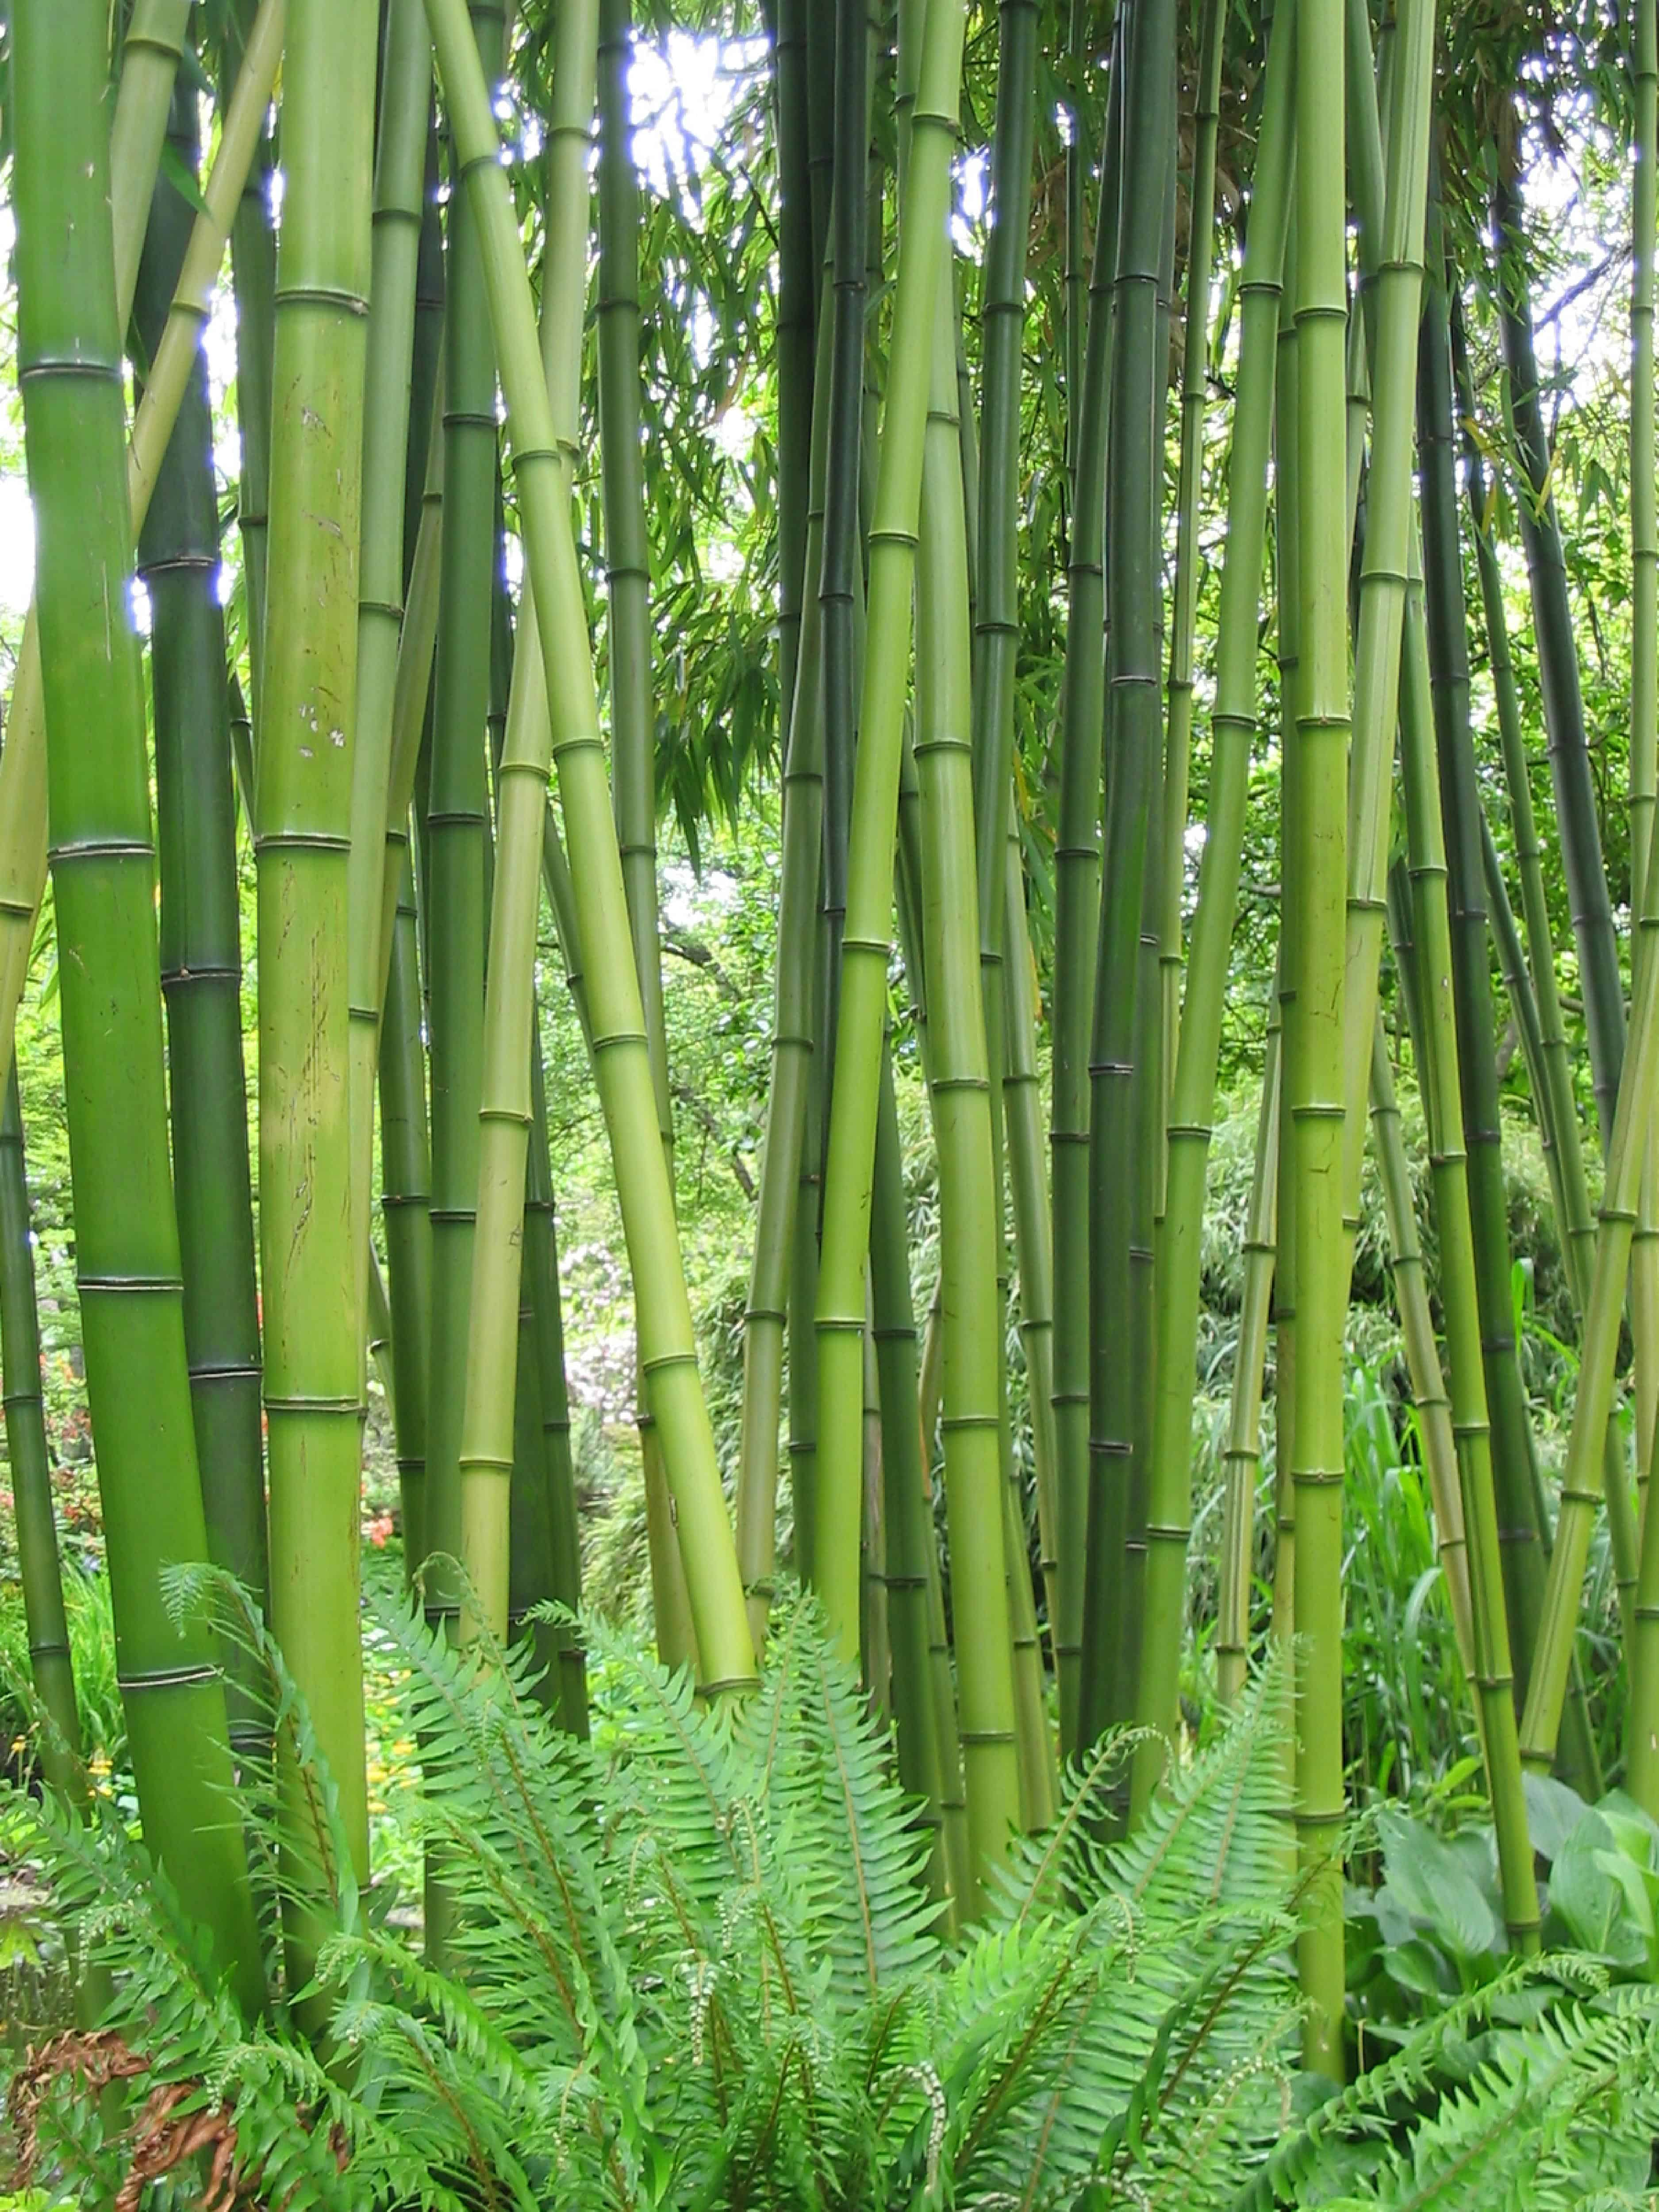 Bamboo at Finnerty Gardens